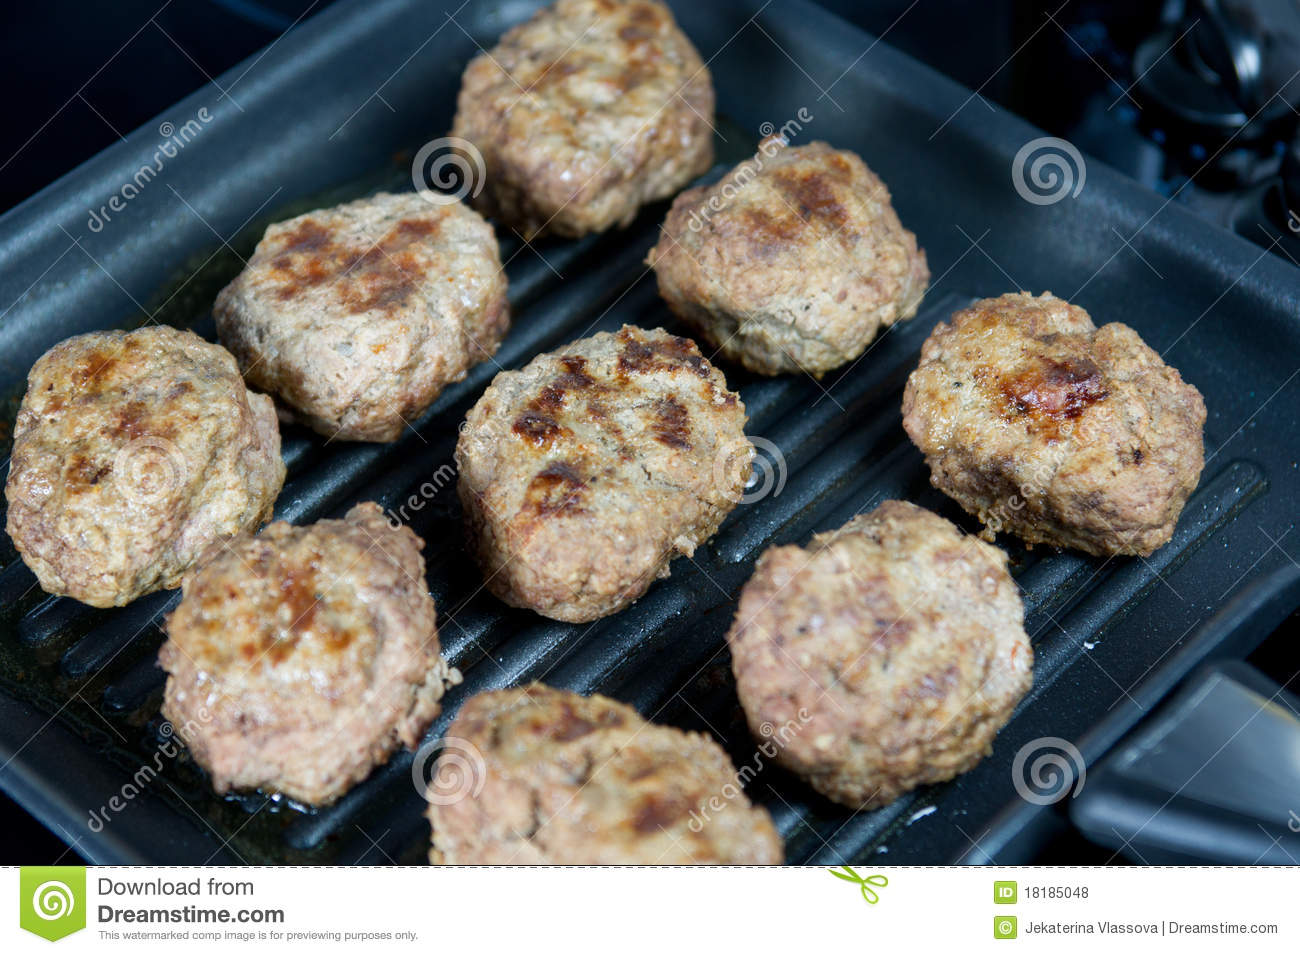 how to make pan fried meatballs